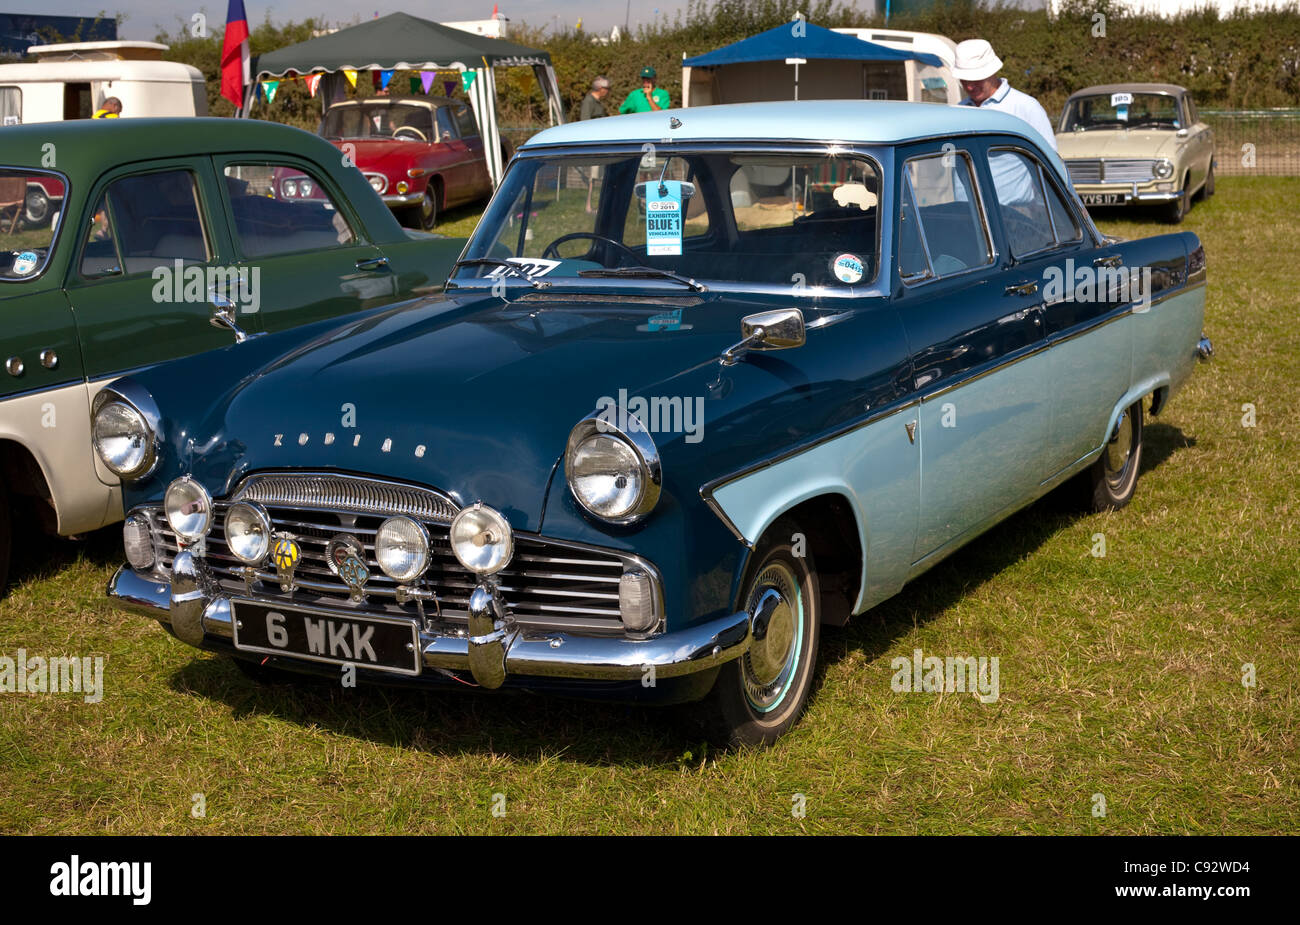 two tone blue ford zodiac with other classic cars at a show with people walking and admiring - Stock Image